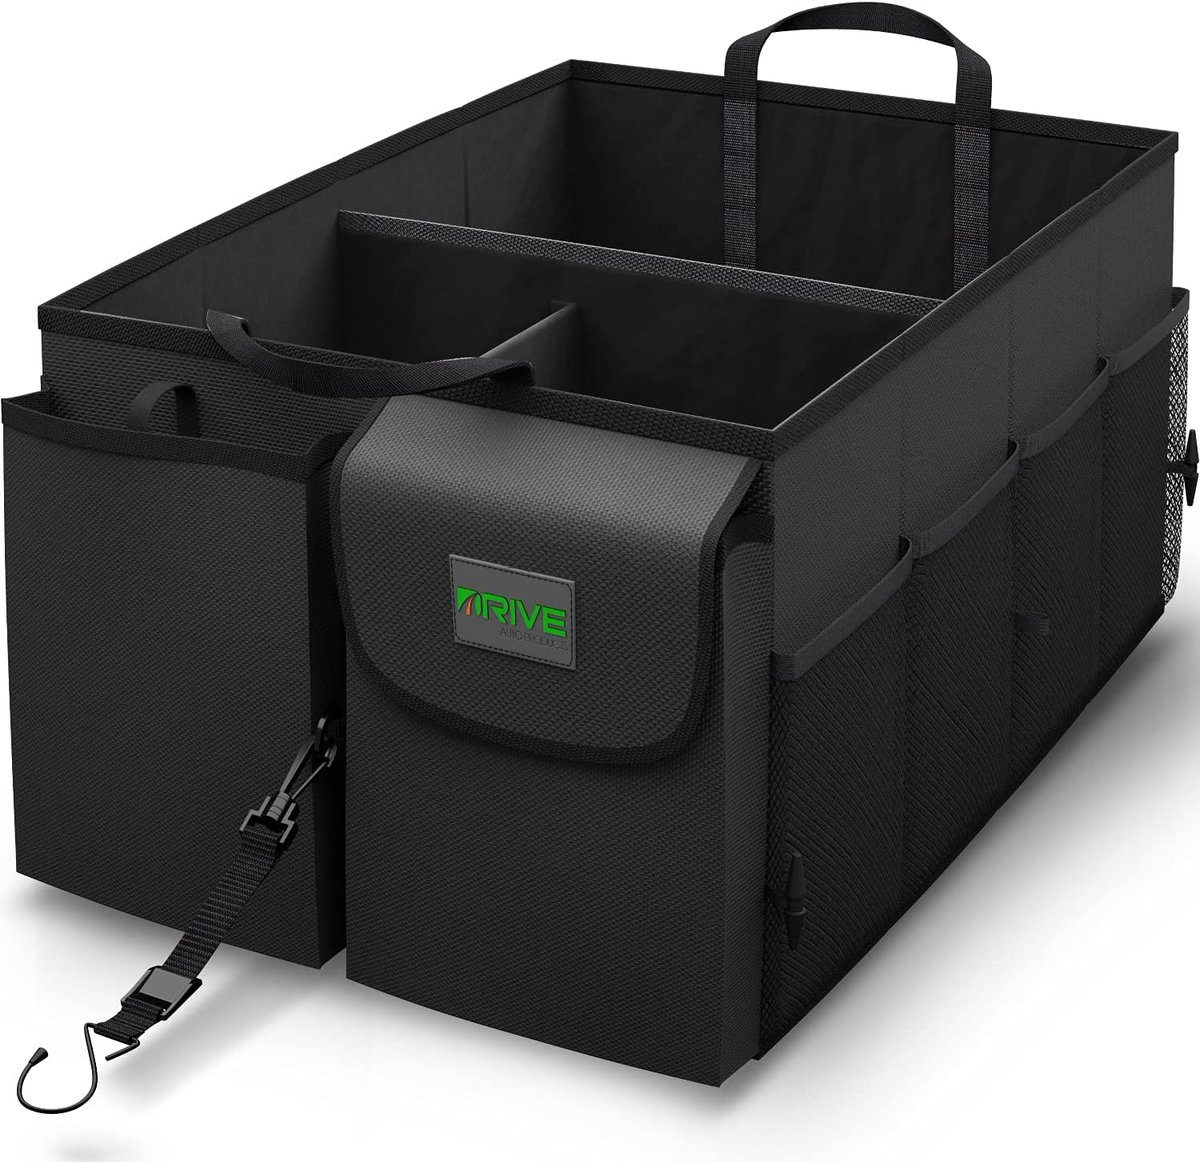 Drive Auto Trunk Organizers and Storage   Only $19.99!